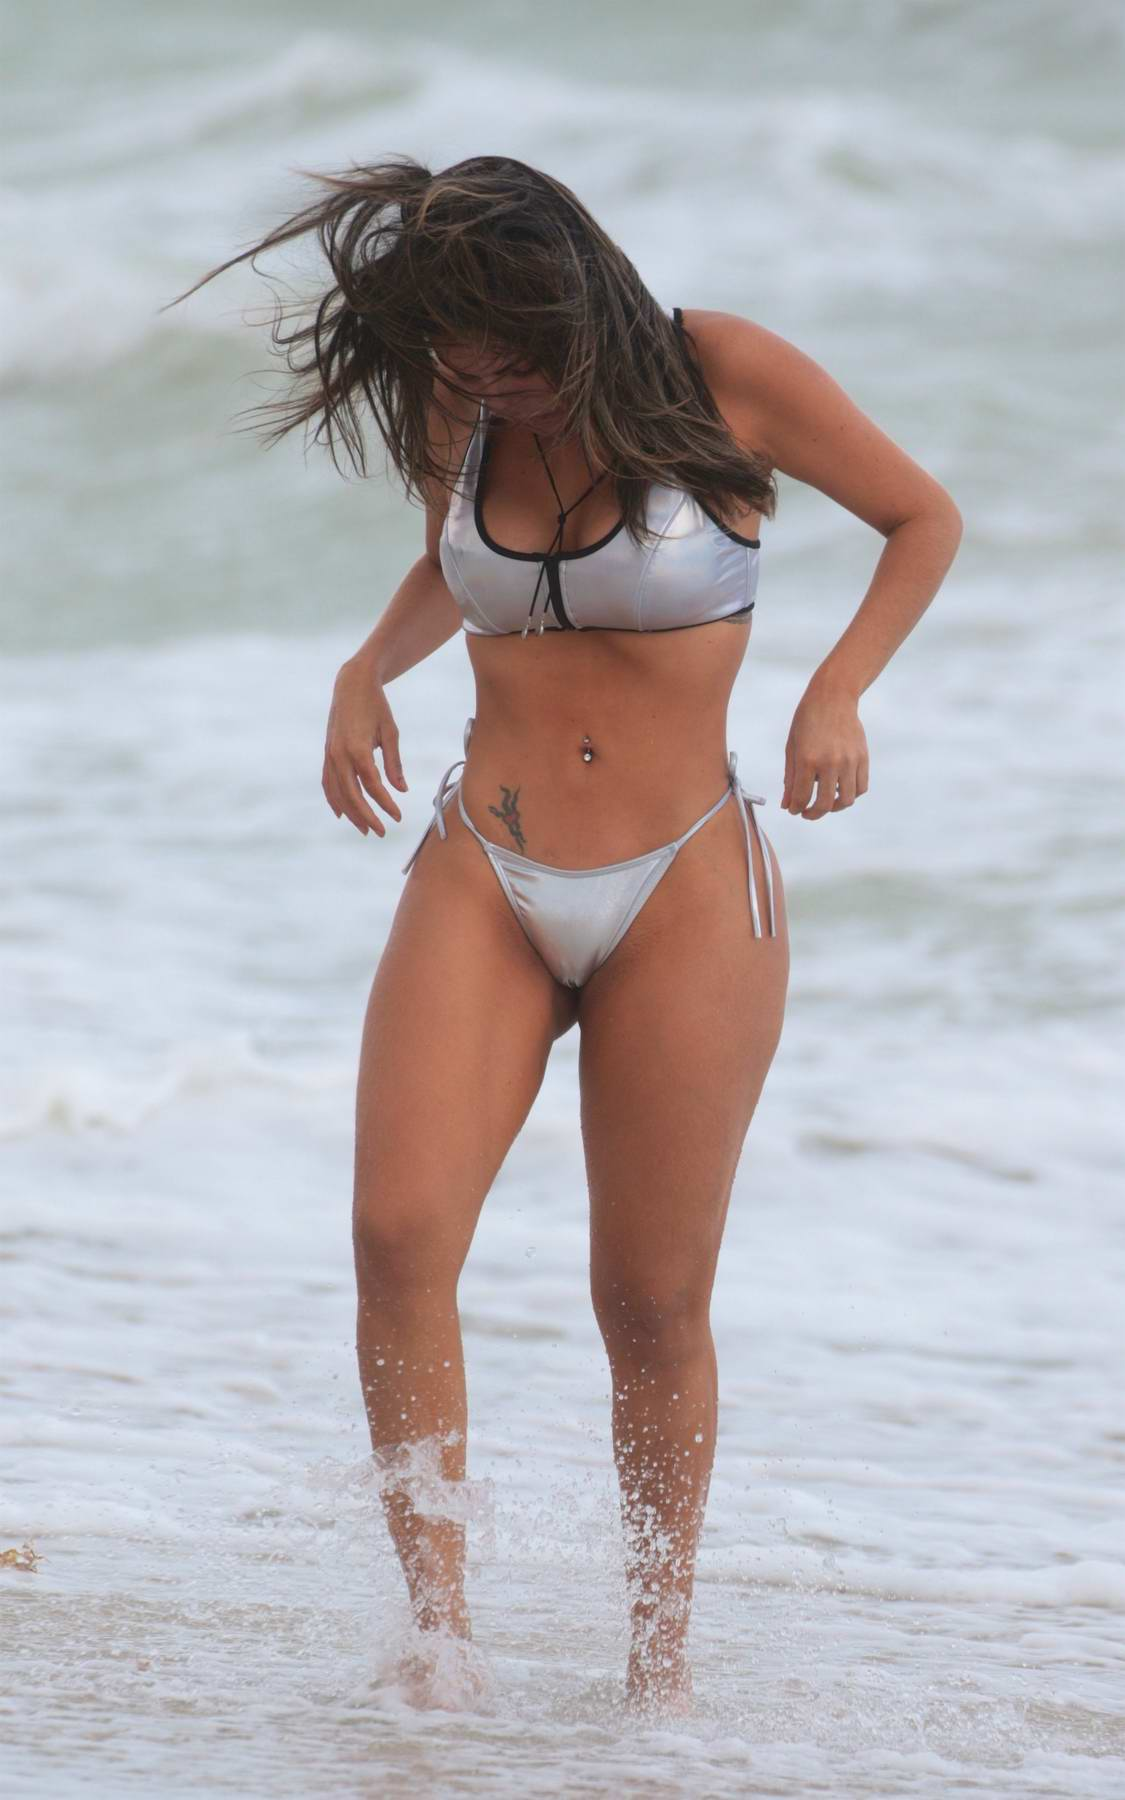 Liziane Gutierrez in a silver bikini at the beach in Miami